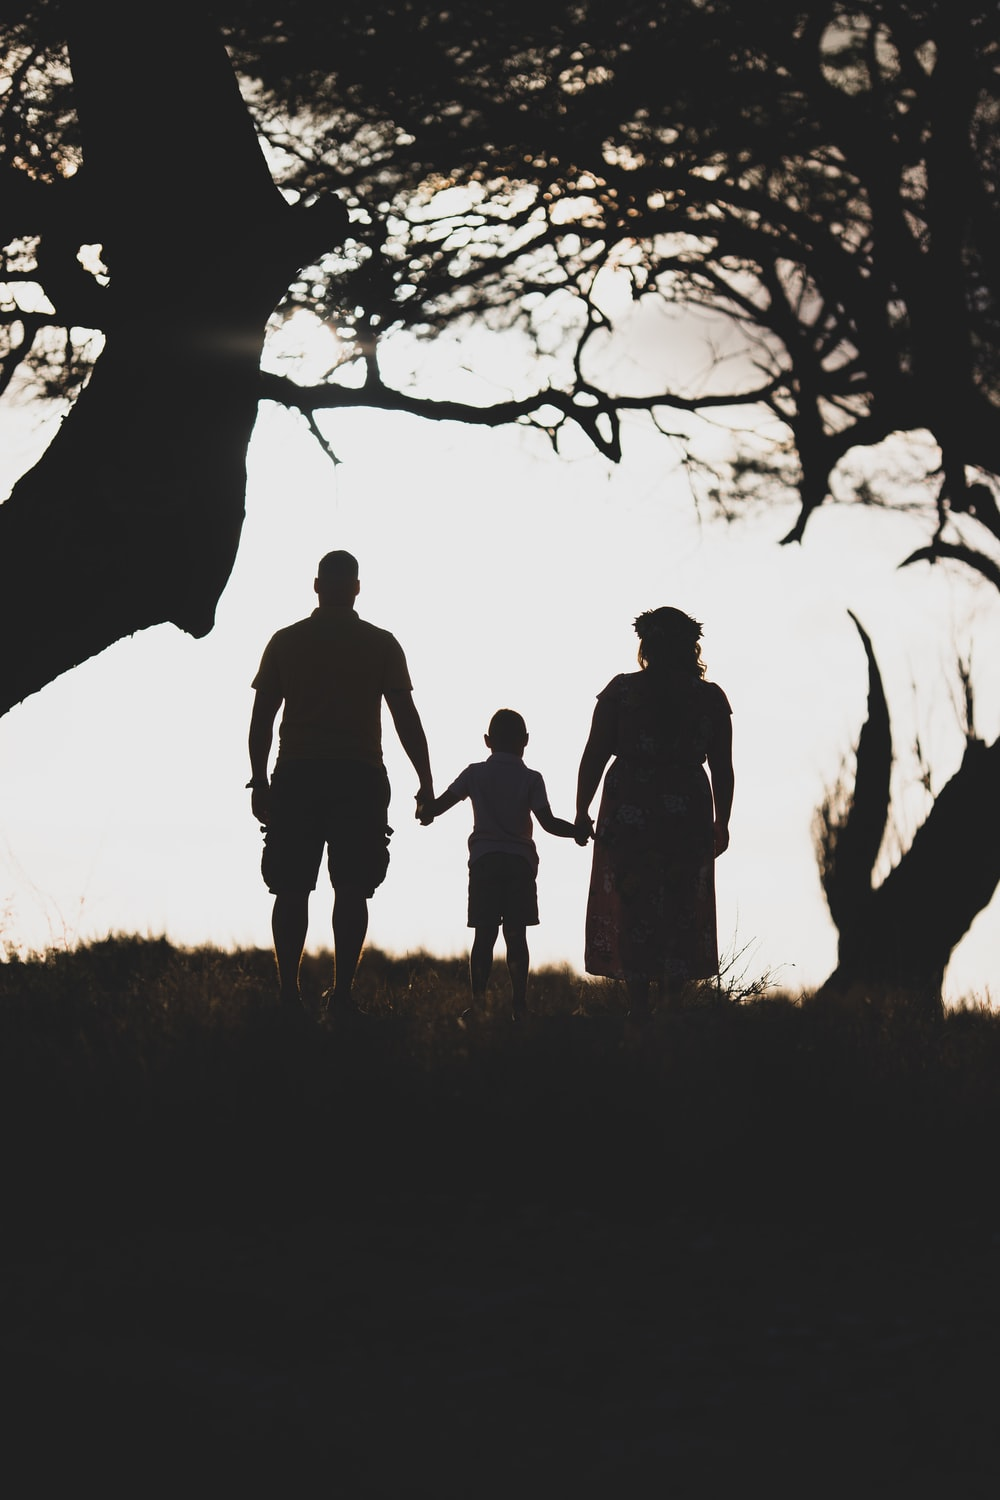 three person standing in between of two tress during daytime grey-scale photography